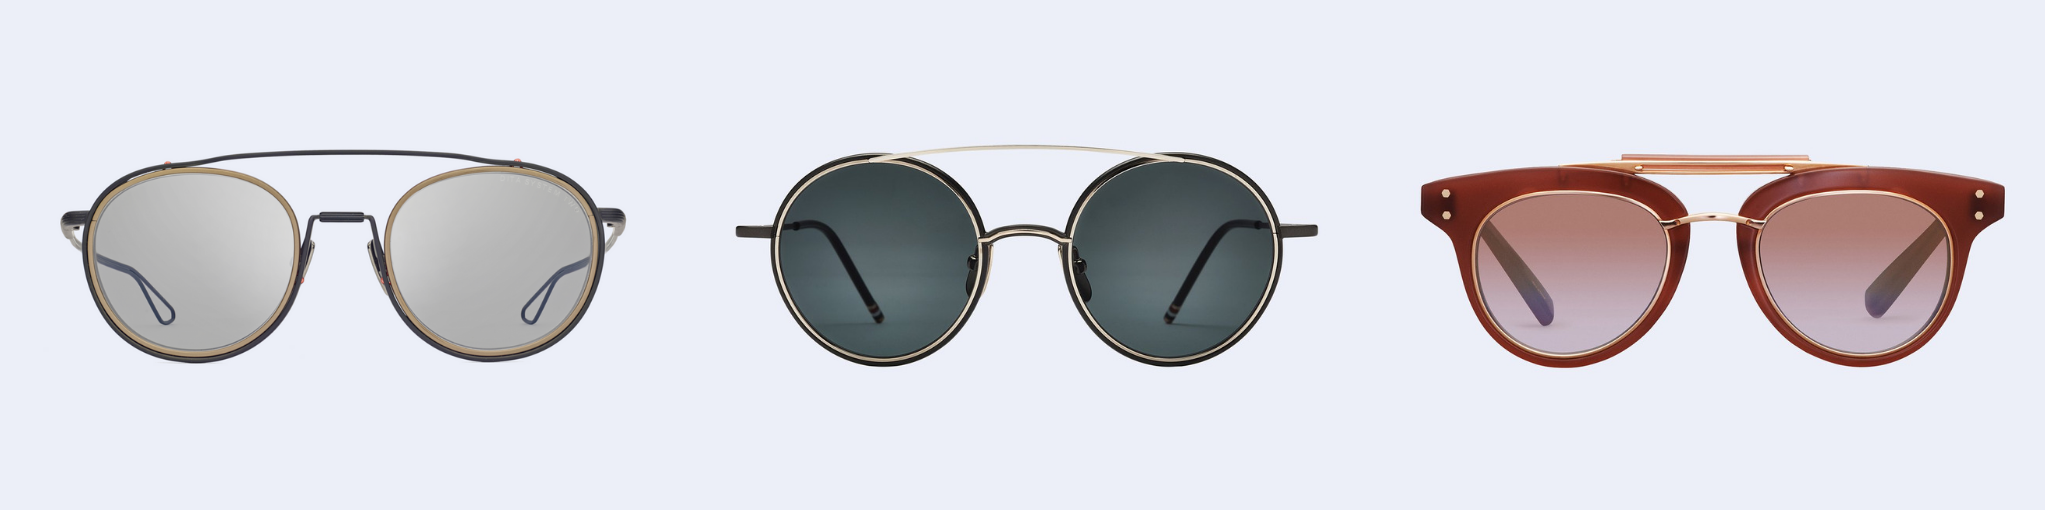 sunglasses trends 2019 double bridge